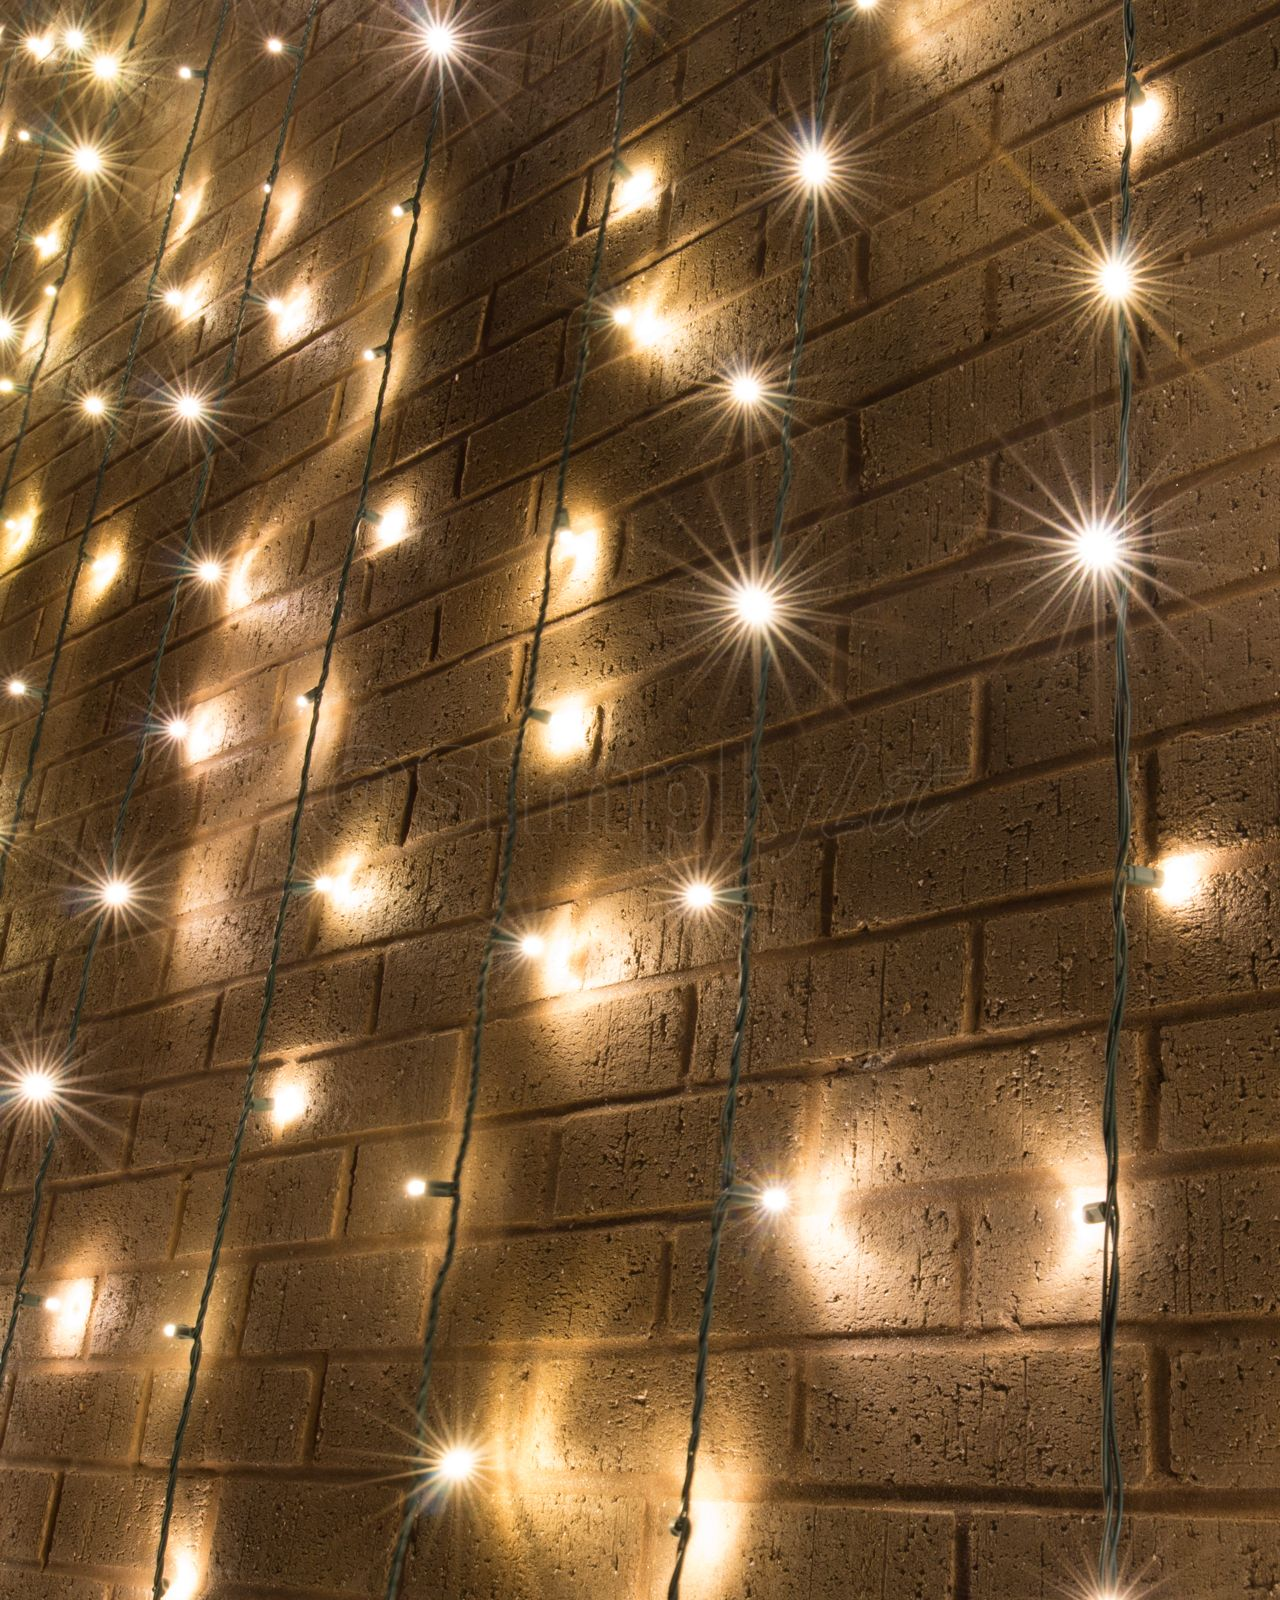 Another Close Up Shot Of The Mini Lights Overlaying A Brick Wall